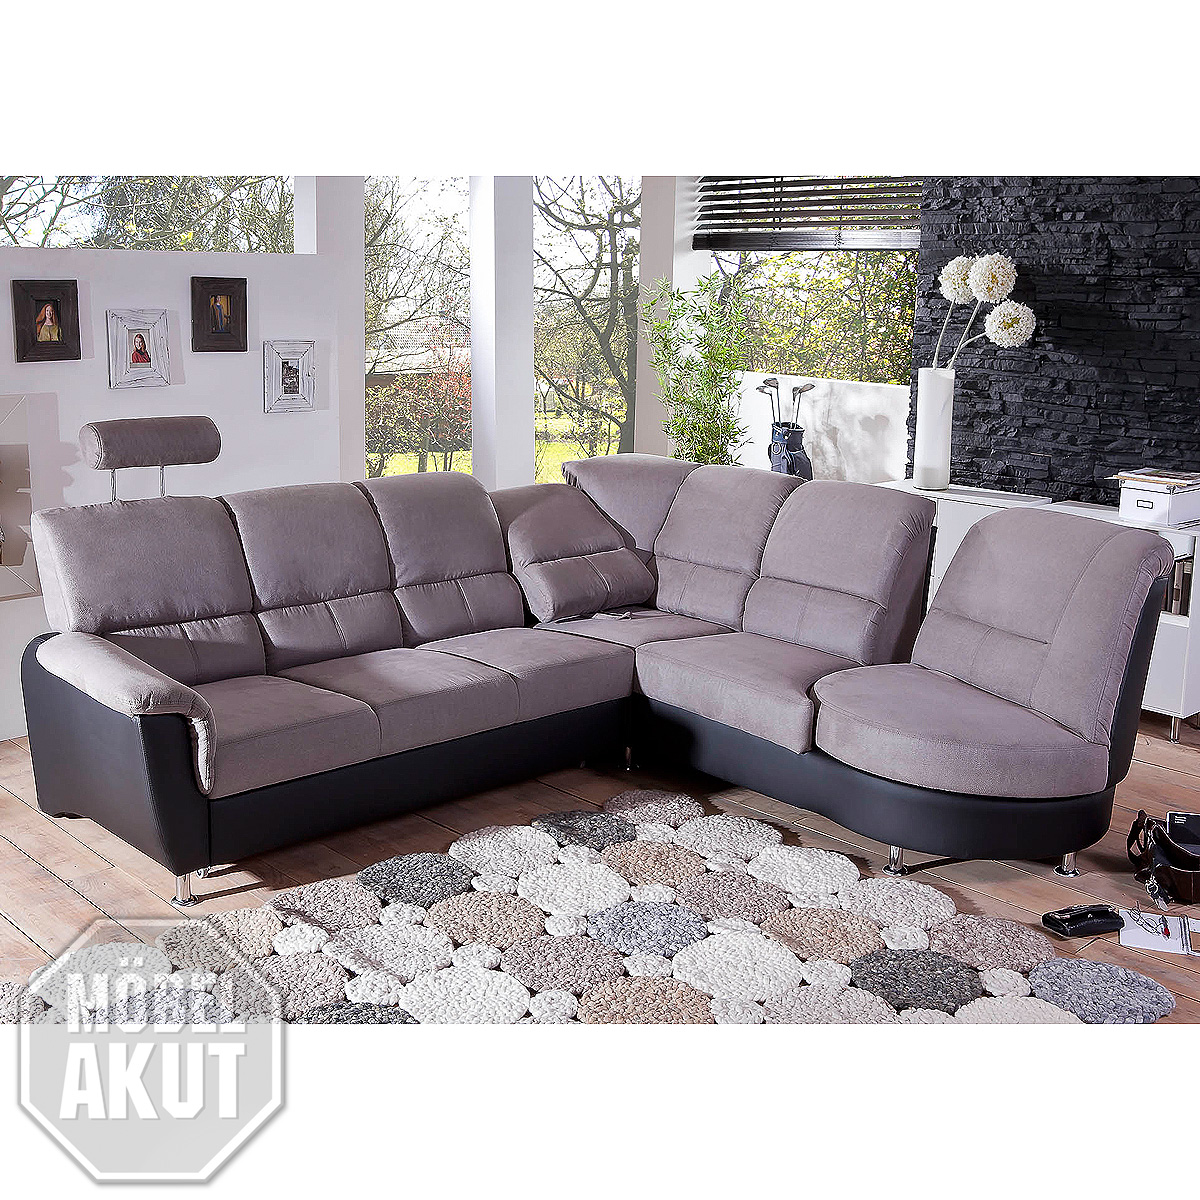 ecksofa pisa eckgarnitur sofa in grau schwarz mit bettfunktion relaxfunktion ebay. Black Bedroom Furniture Sets. Home Design Ideas